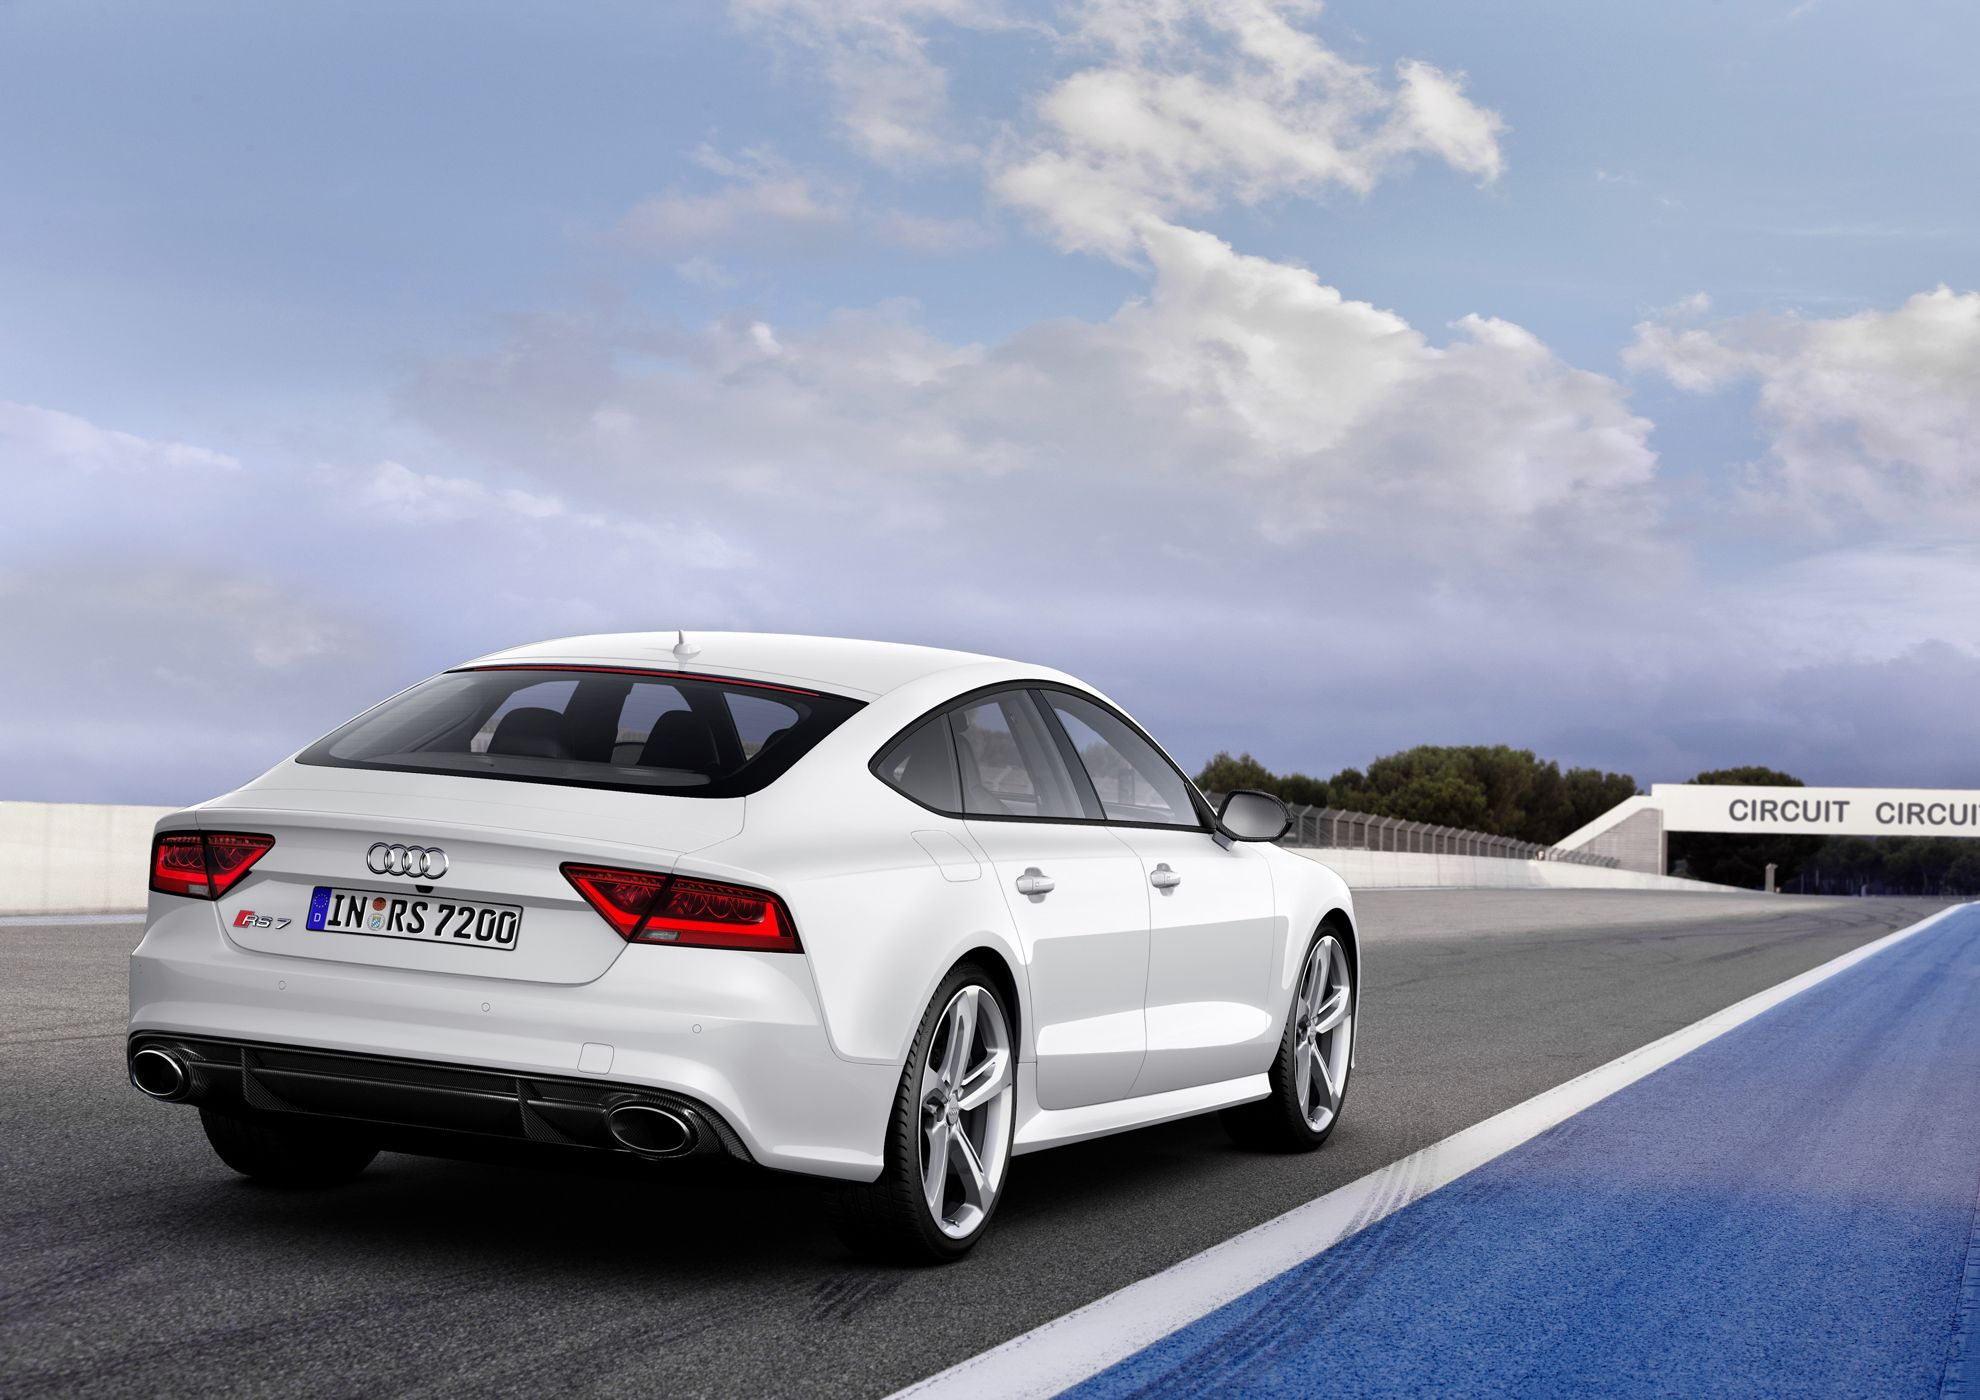 audi south africa extends its rs range with two new models. Black Bedroom Furniture Sets. Home Design Ideas